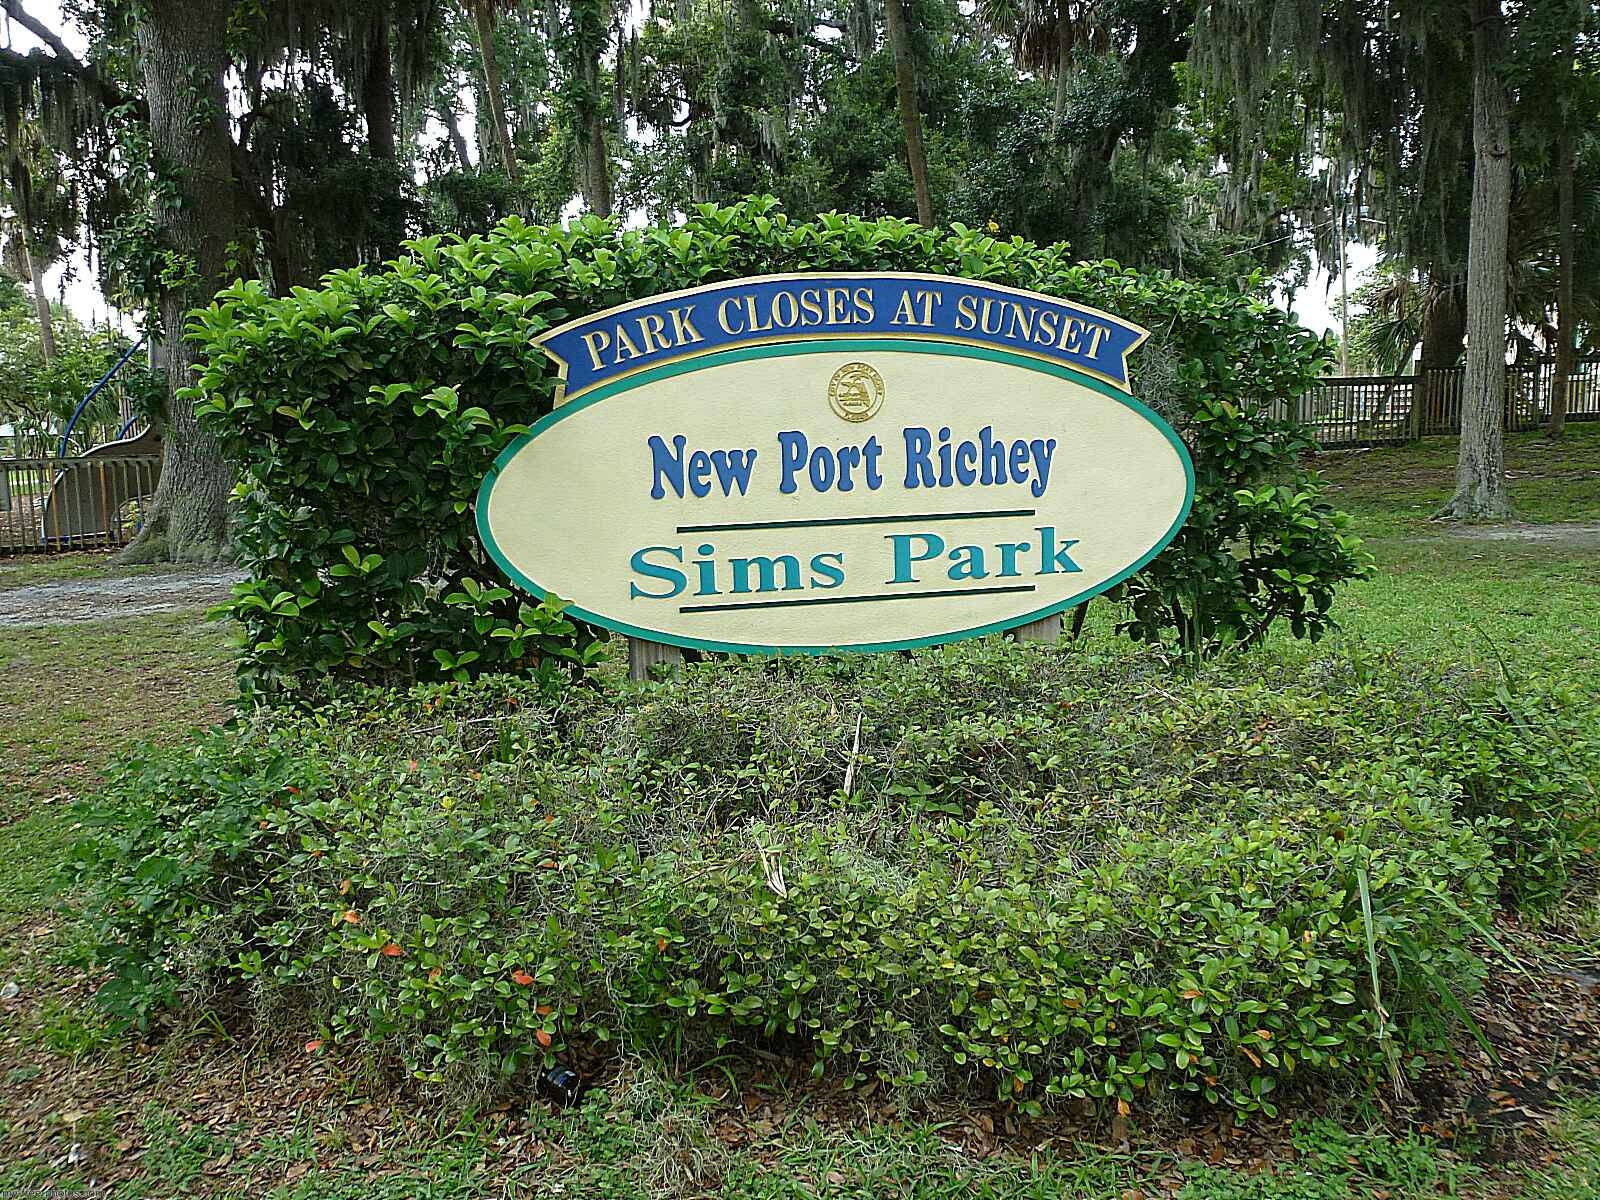 Newport richey,Sims Park